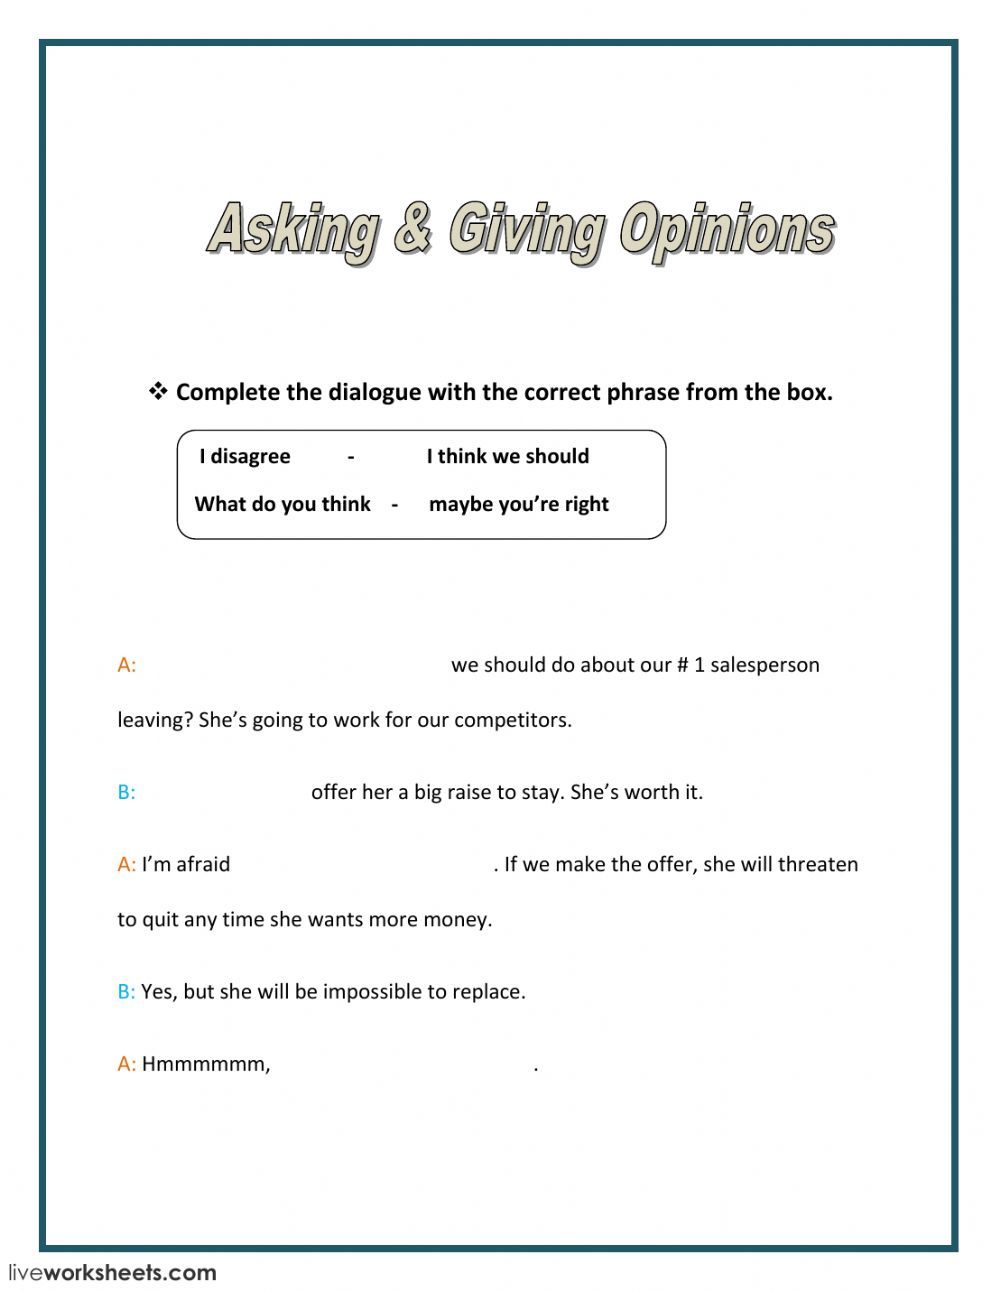 PDF Speaking skills practice: Giving your opinion exercises